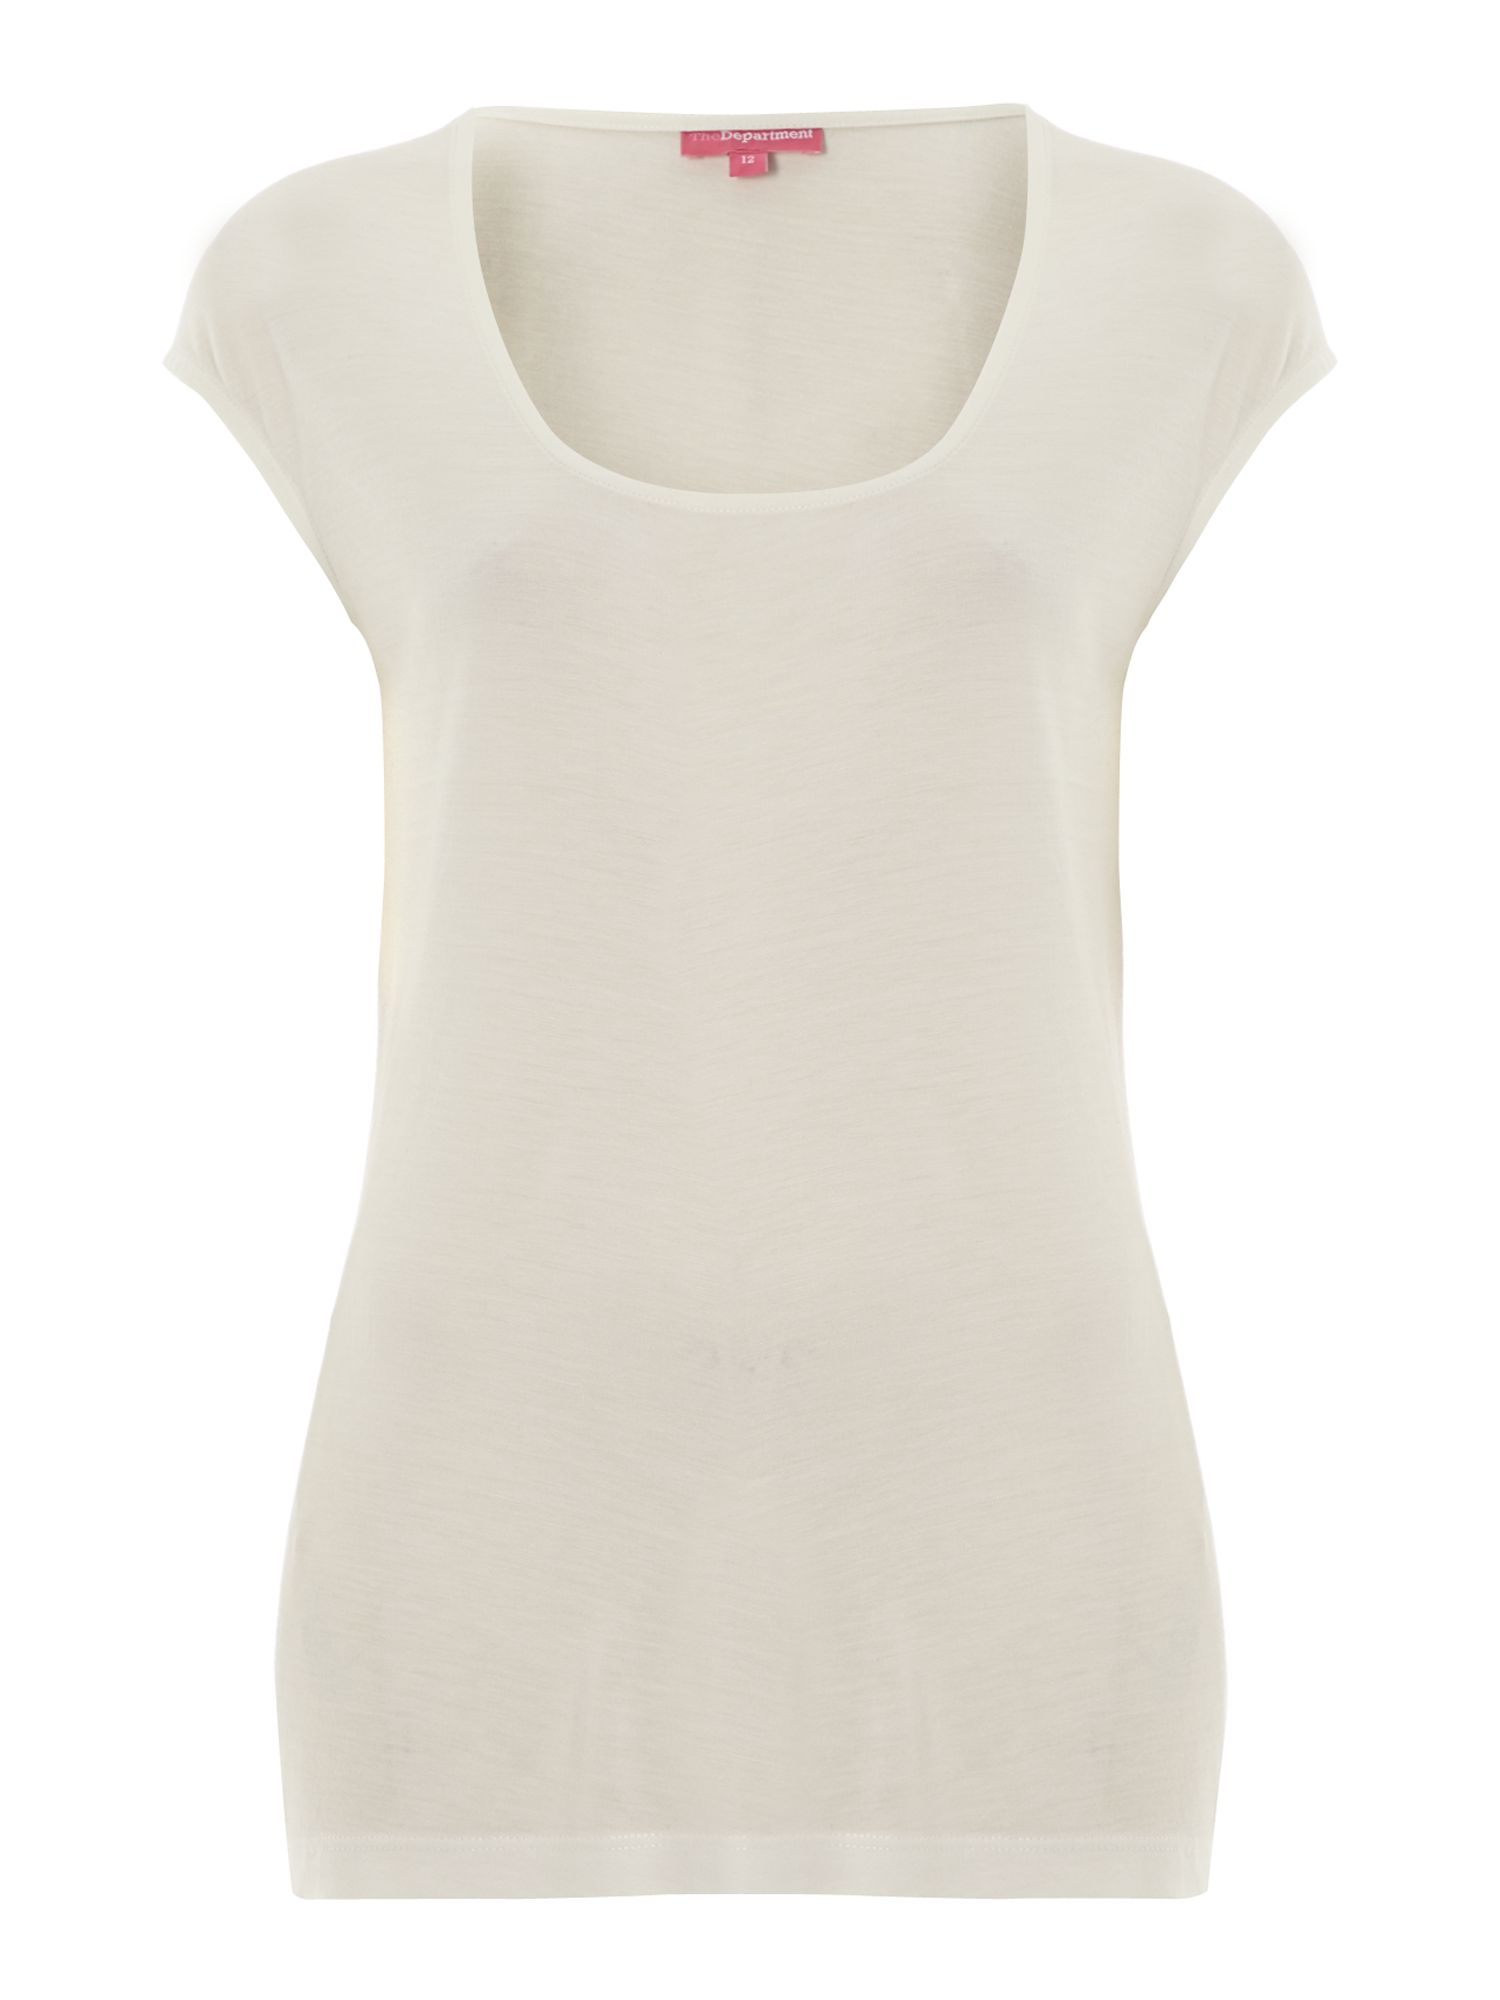 Cap square neck jersey top